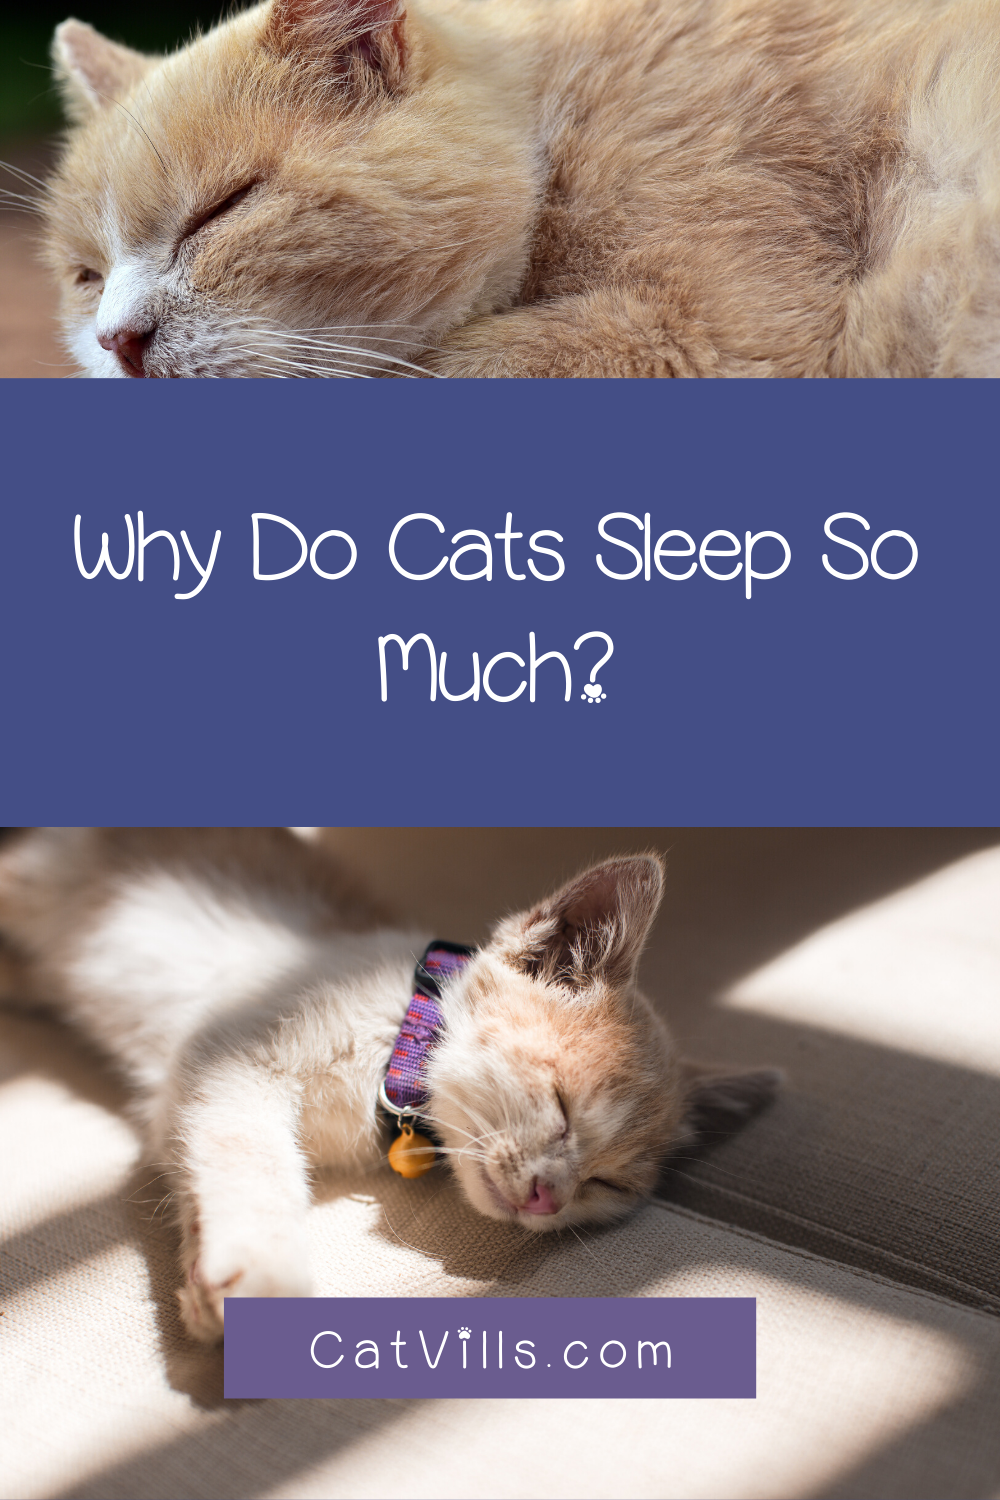 Why Do Cats Sleep So Much? Here's 3 Reasons Why! in 2020